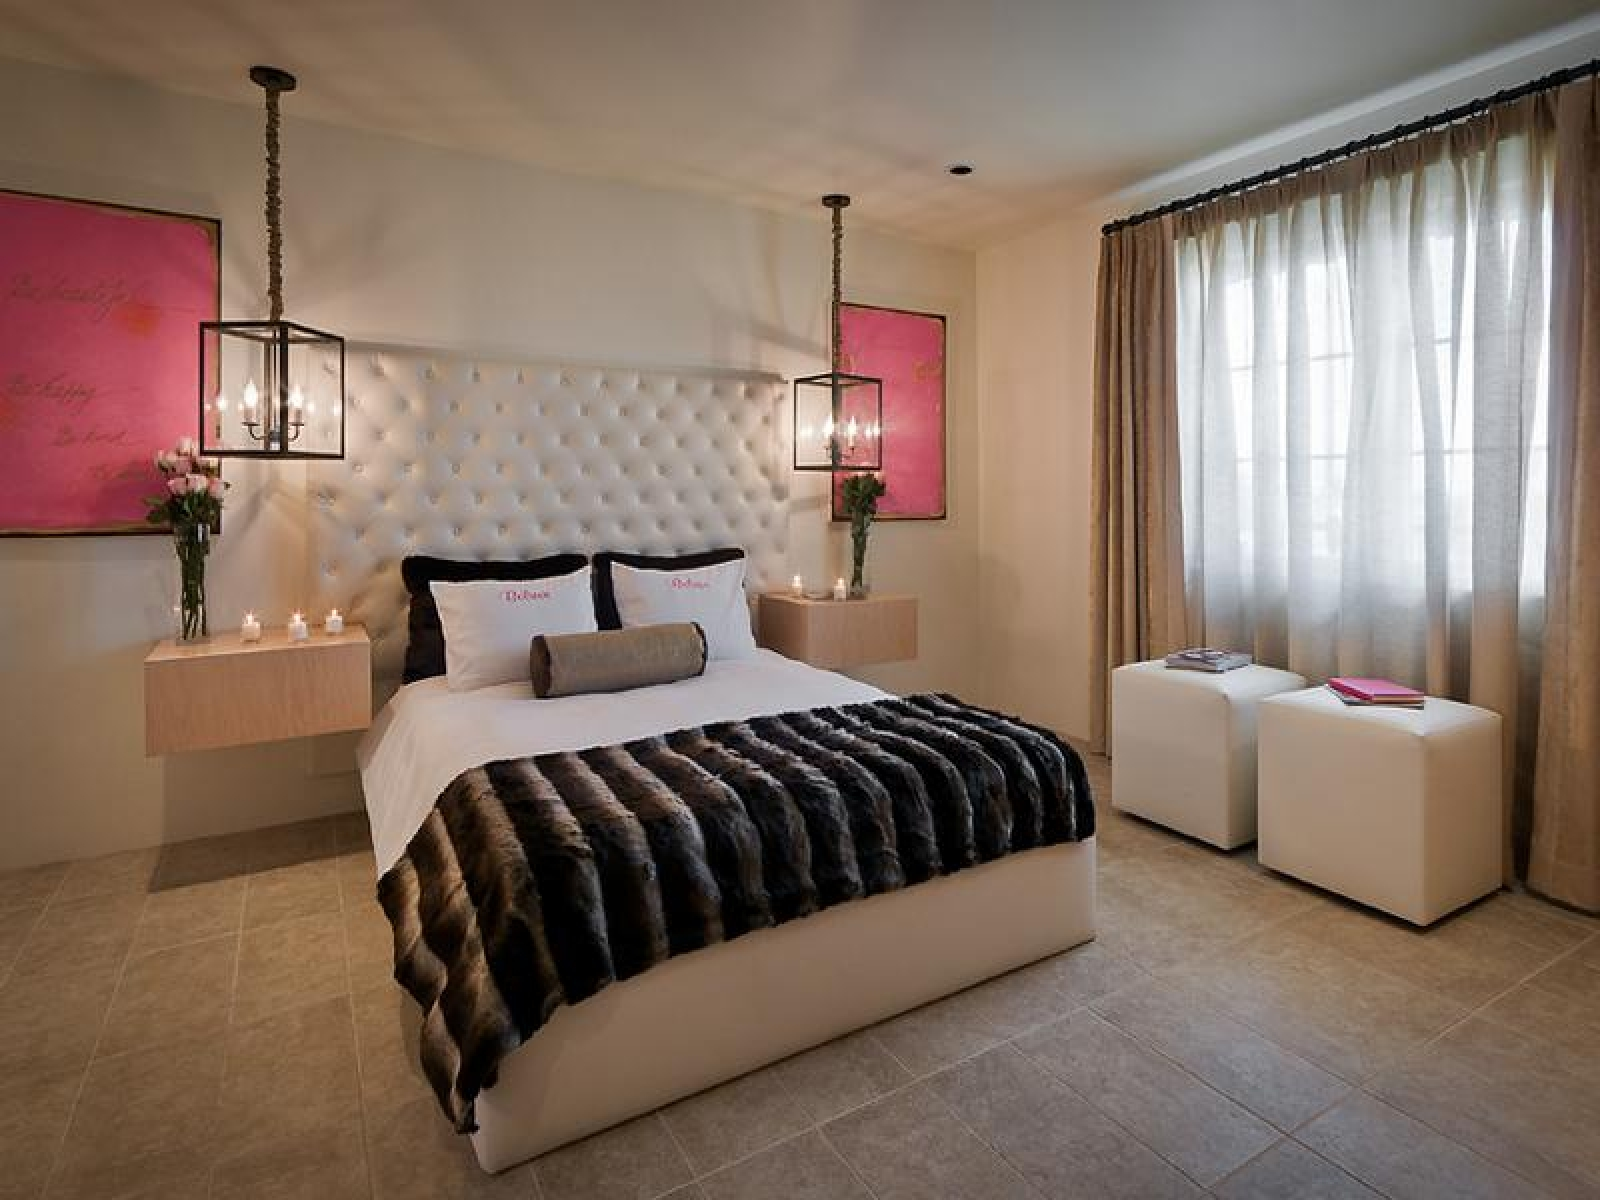 Extraordinary Bedroom Ideas For Young Adults With Jazzy Interior Themes Ideas 4 Homes